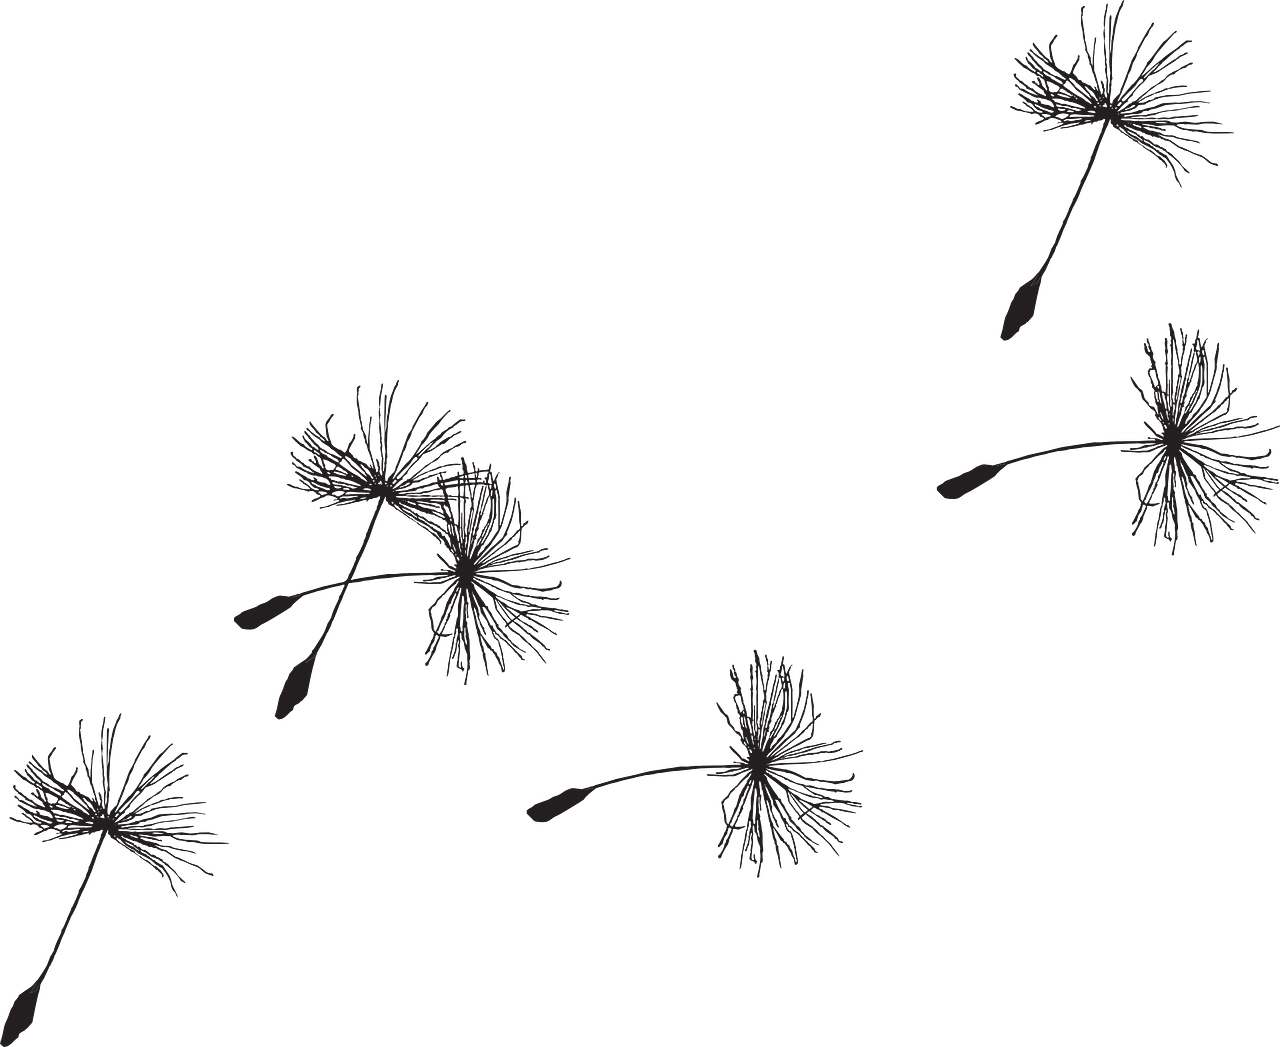 Sun dandilion birds clipart black and white library Free Image on Pixabay - Dandelion, Seed, Flora, Grass | Pinterest ... black and white library